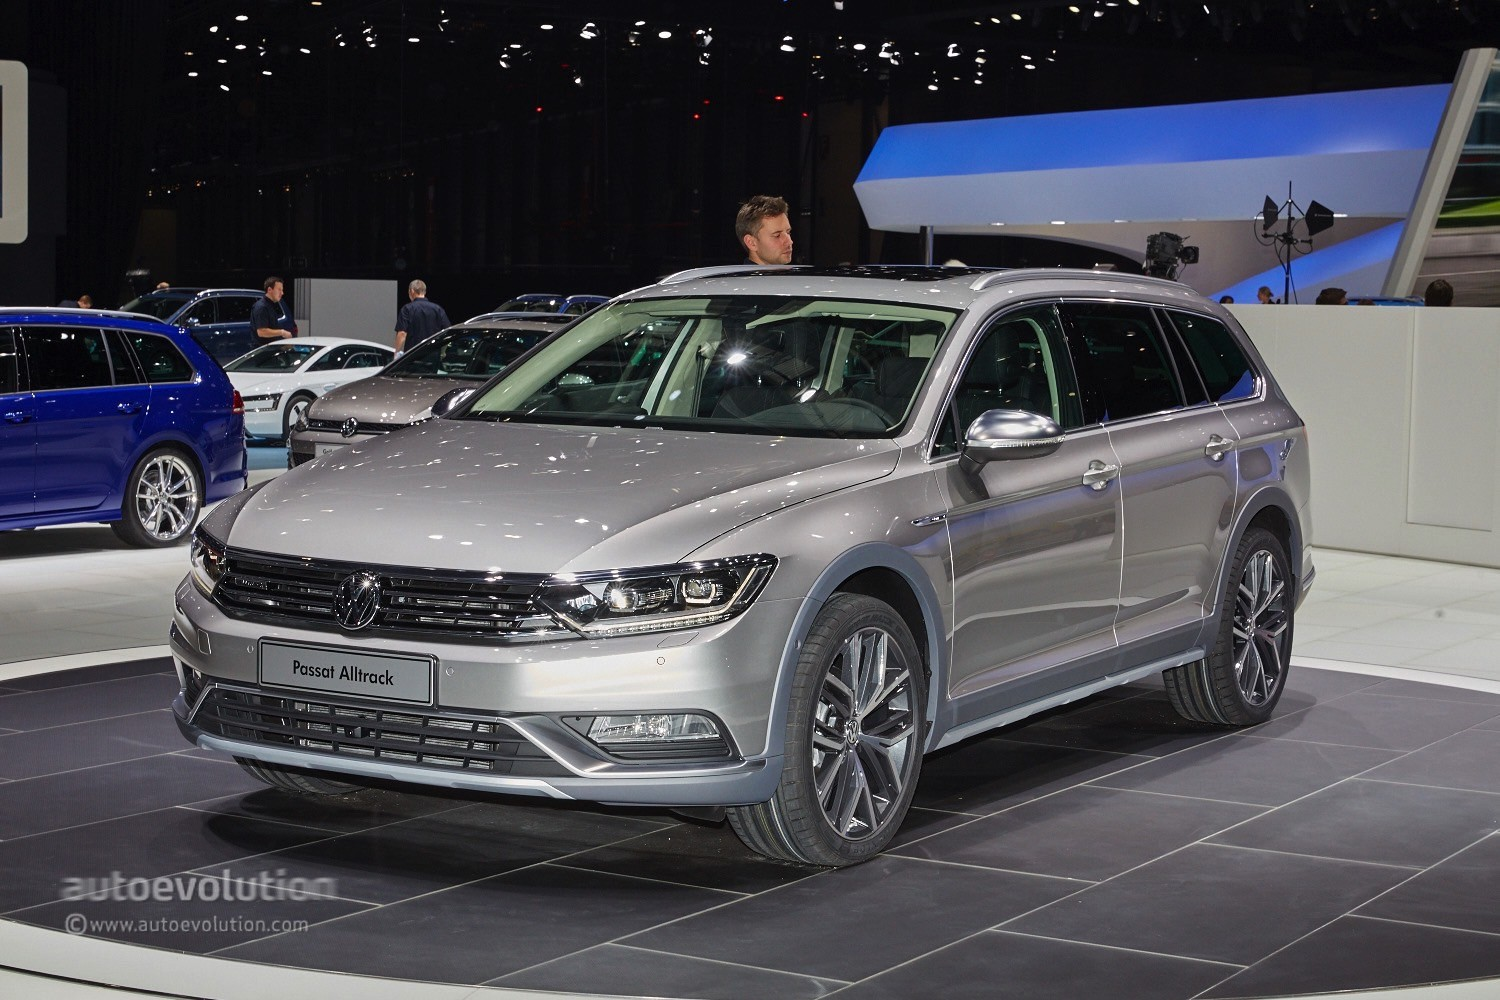 b8 volkswagen passat alltrack unveiled. Black Bedroom Furniture Sets. Home Design Ideas